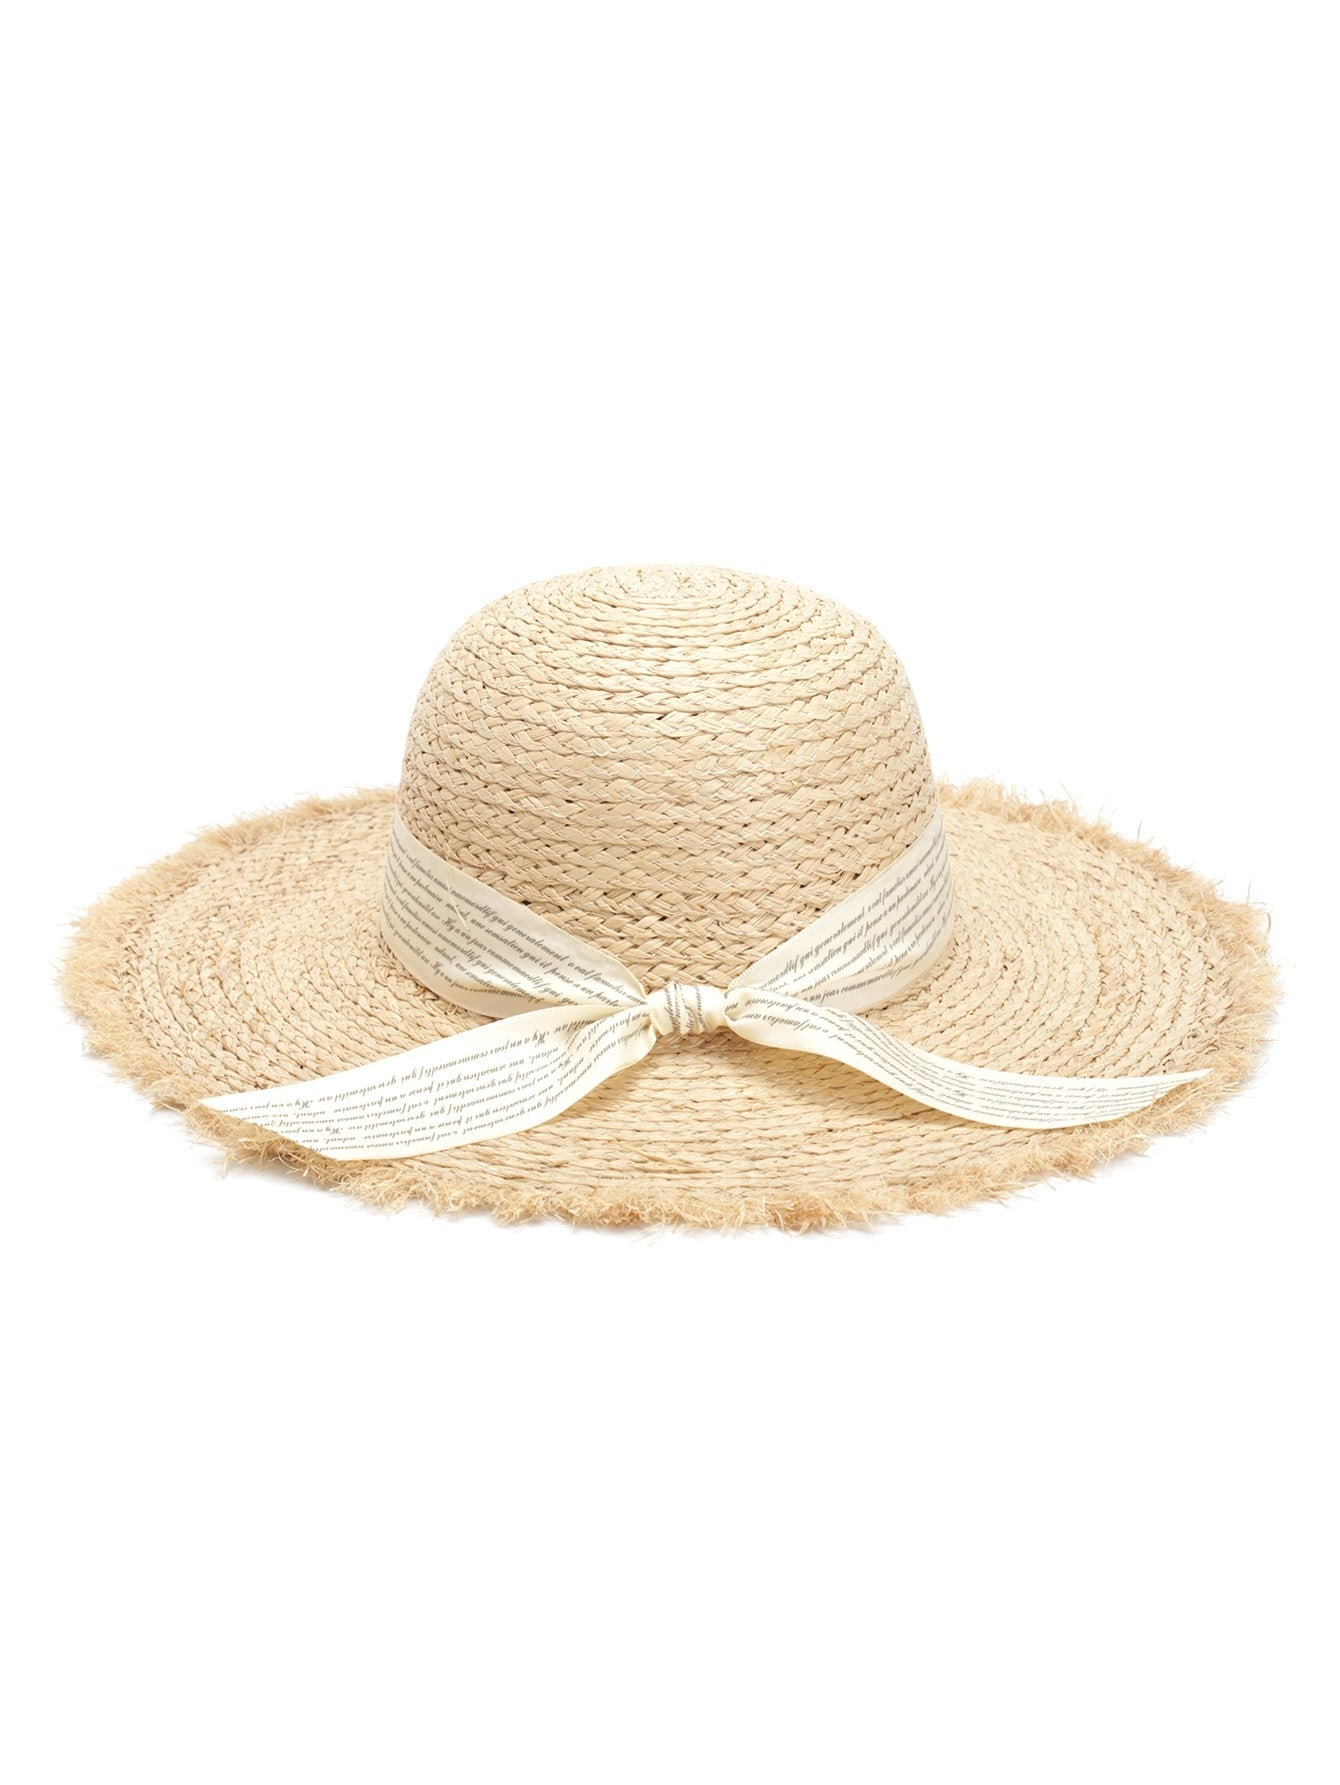 Knot Band Raw Trim Straw Hat stetson men s breakers premium shantung straw hat